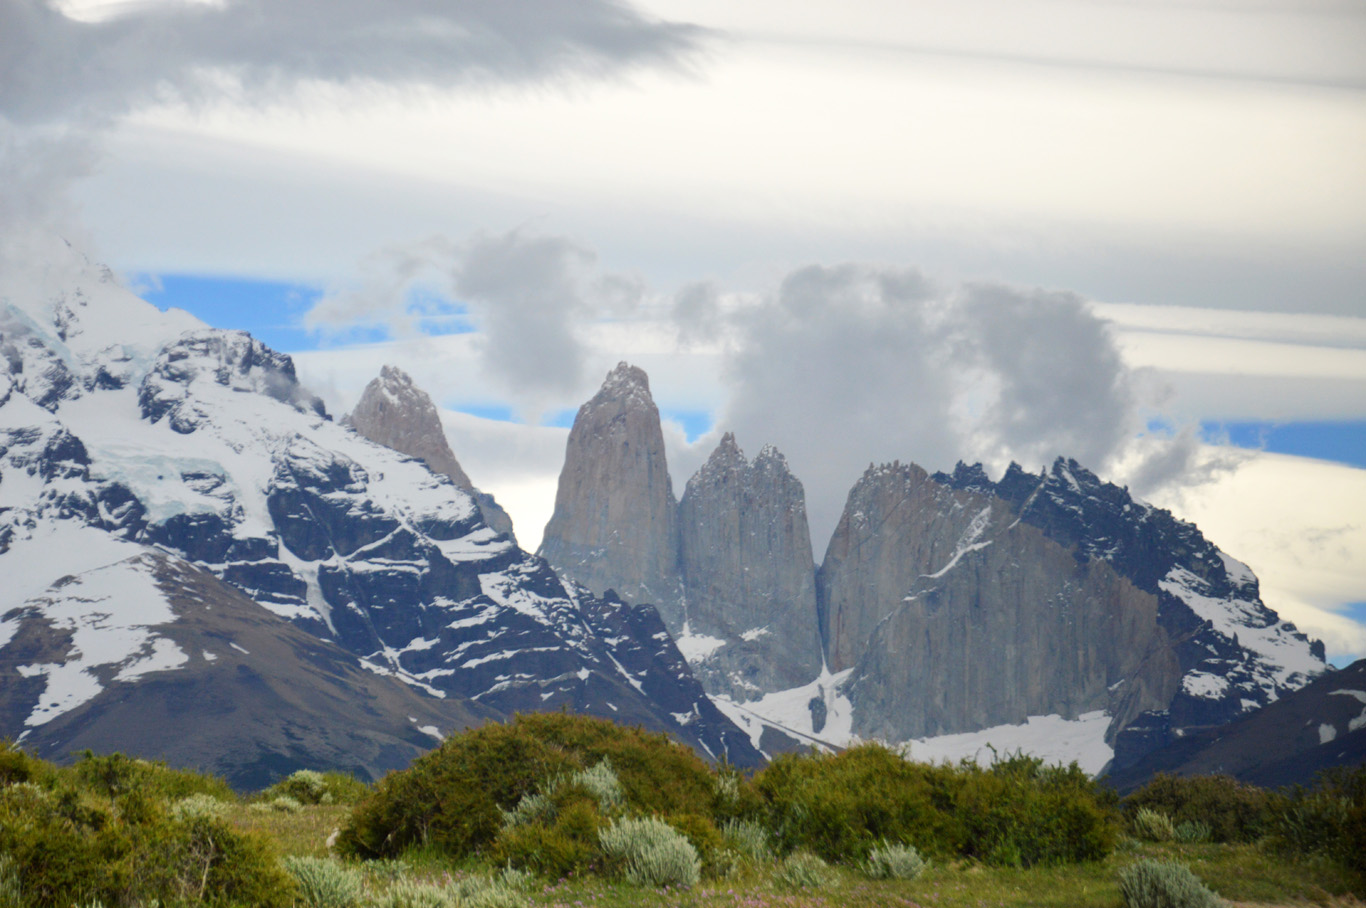 Torres del Paine - view from the bus